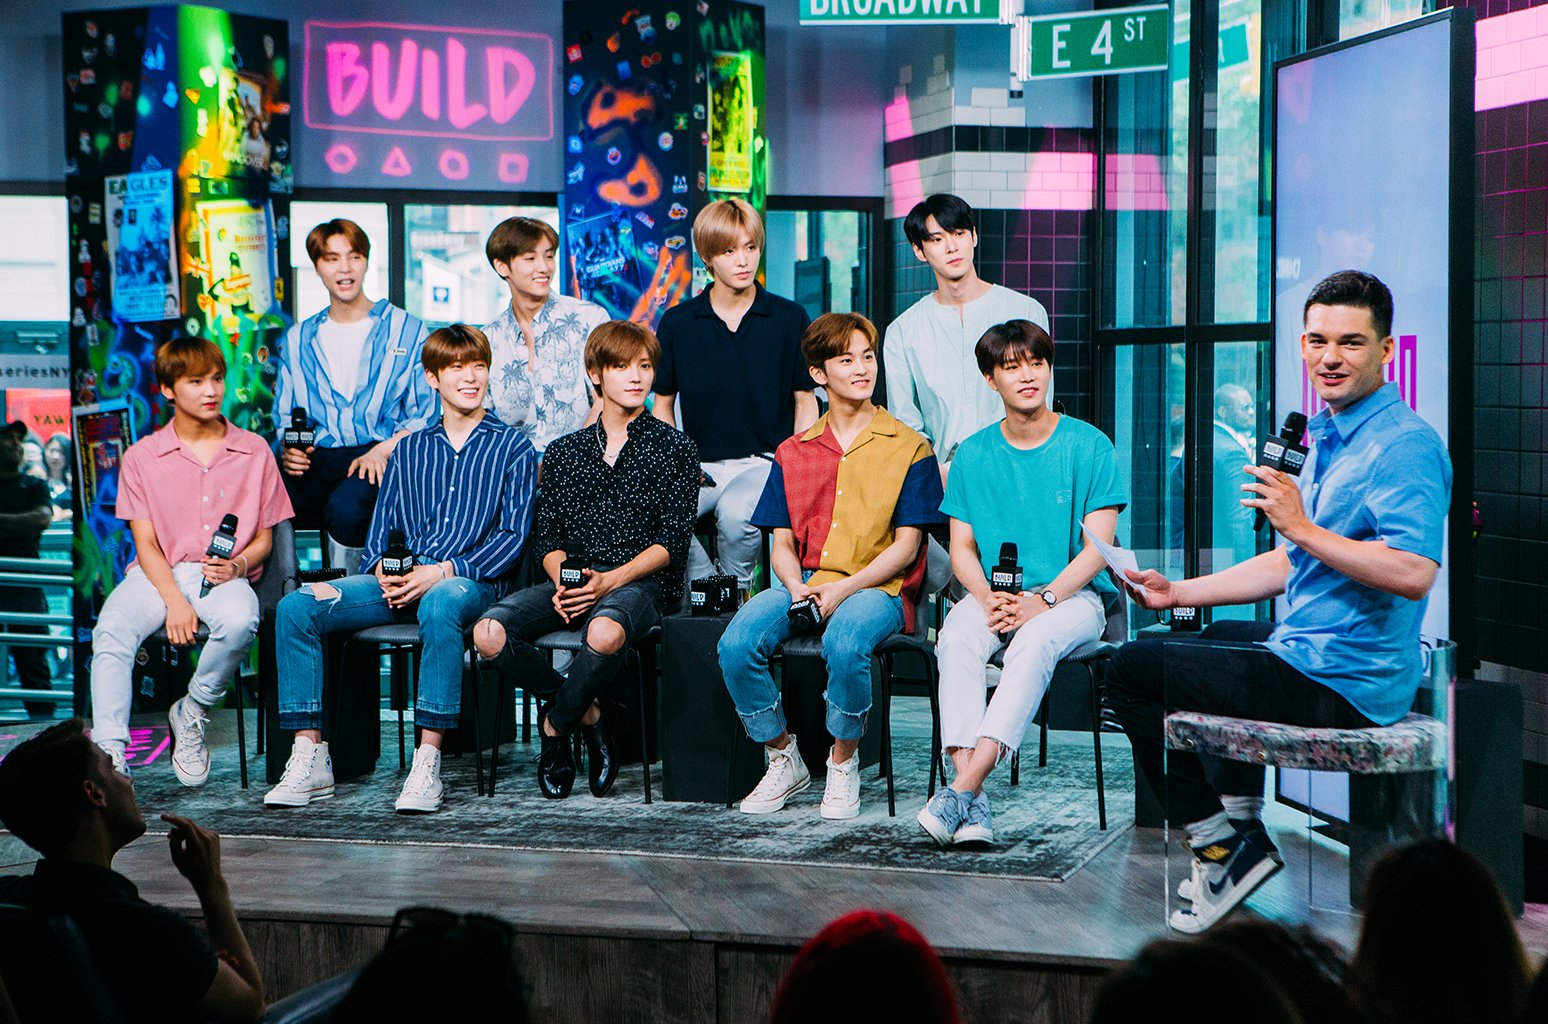 How @NCTsmtown_127's exciting visit at @BUILDseriesNYC recalled the heyday of 'TRL' https://t.co/srexzXZshu https://t.co/Trgf5EUo9K